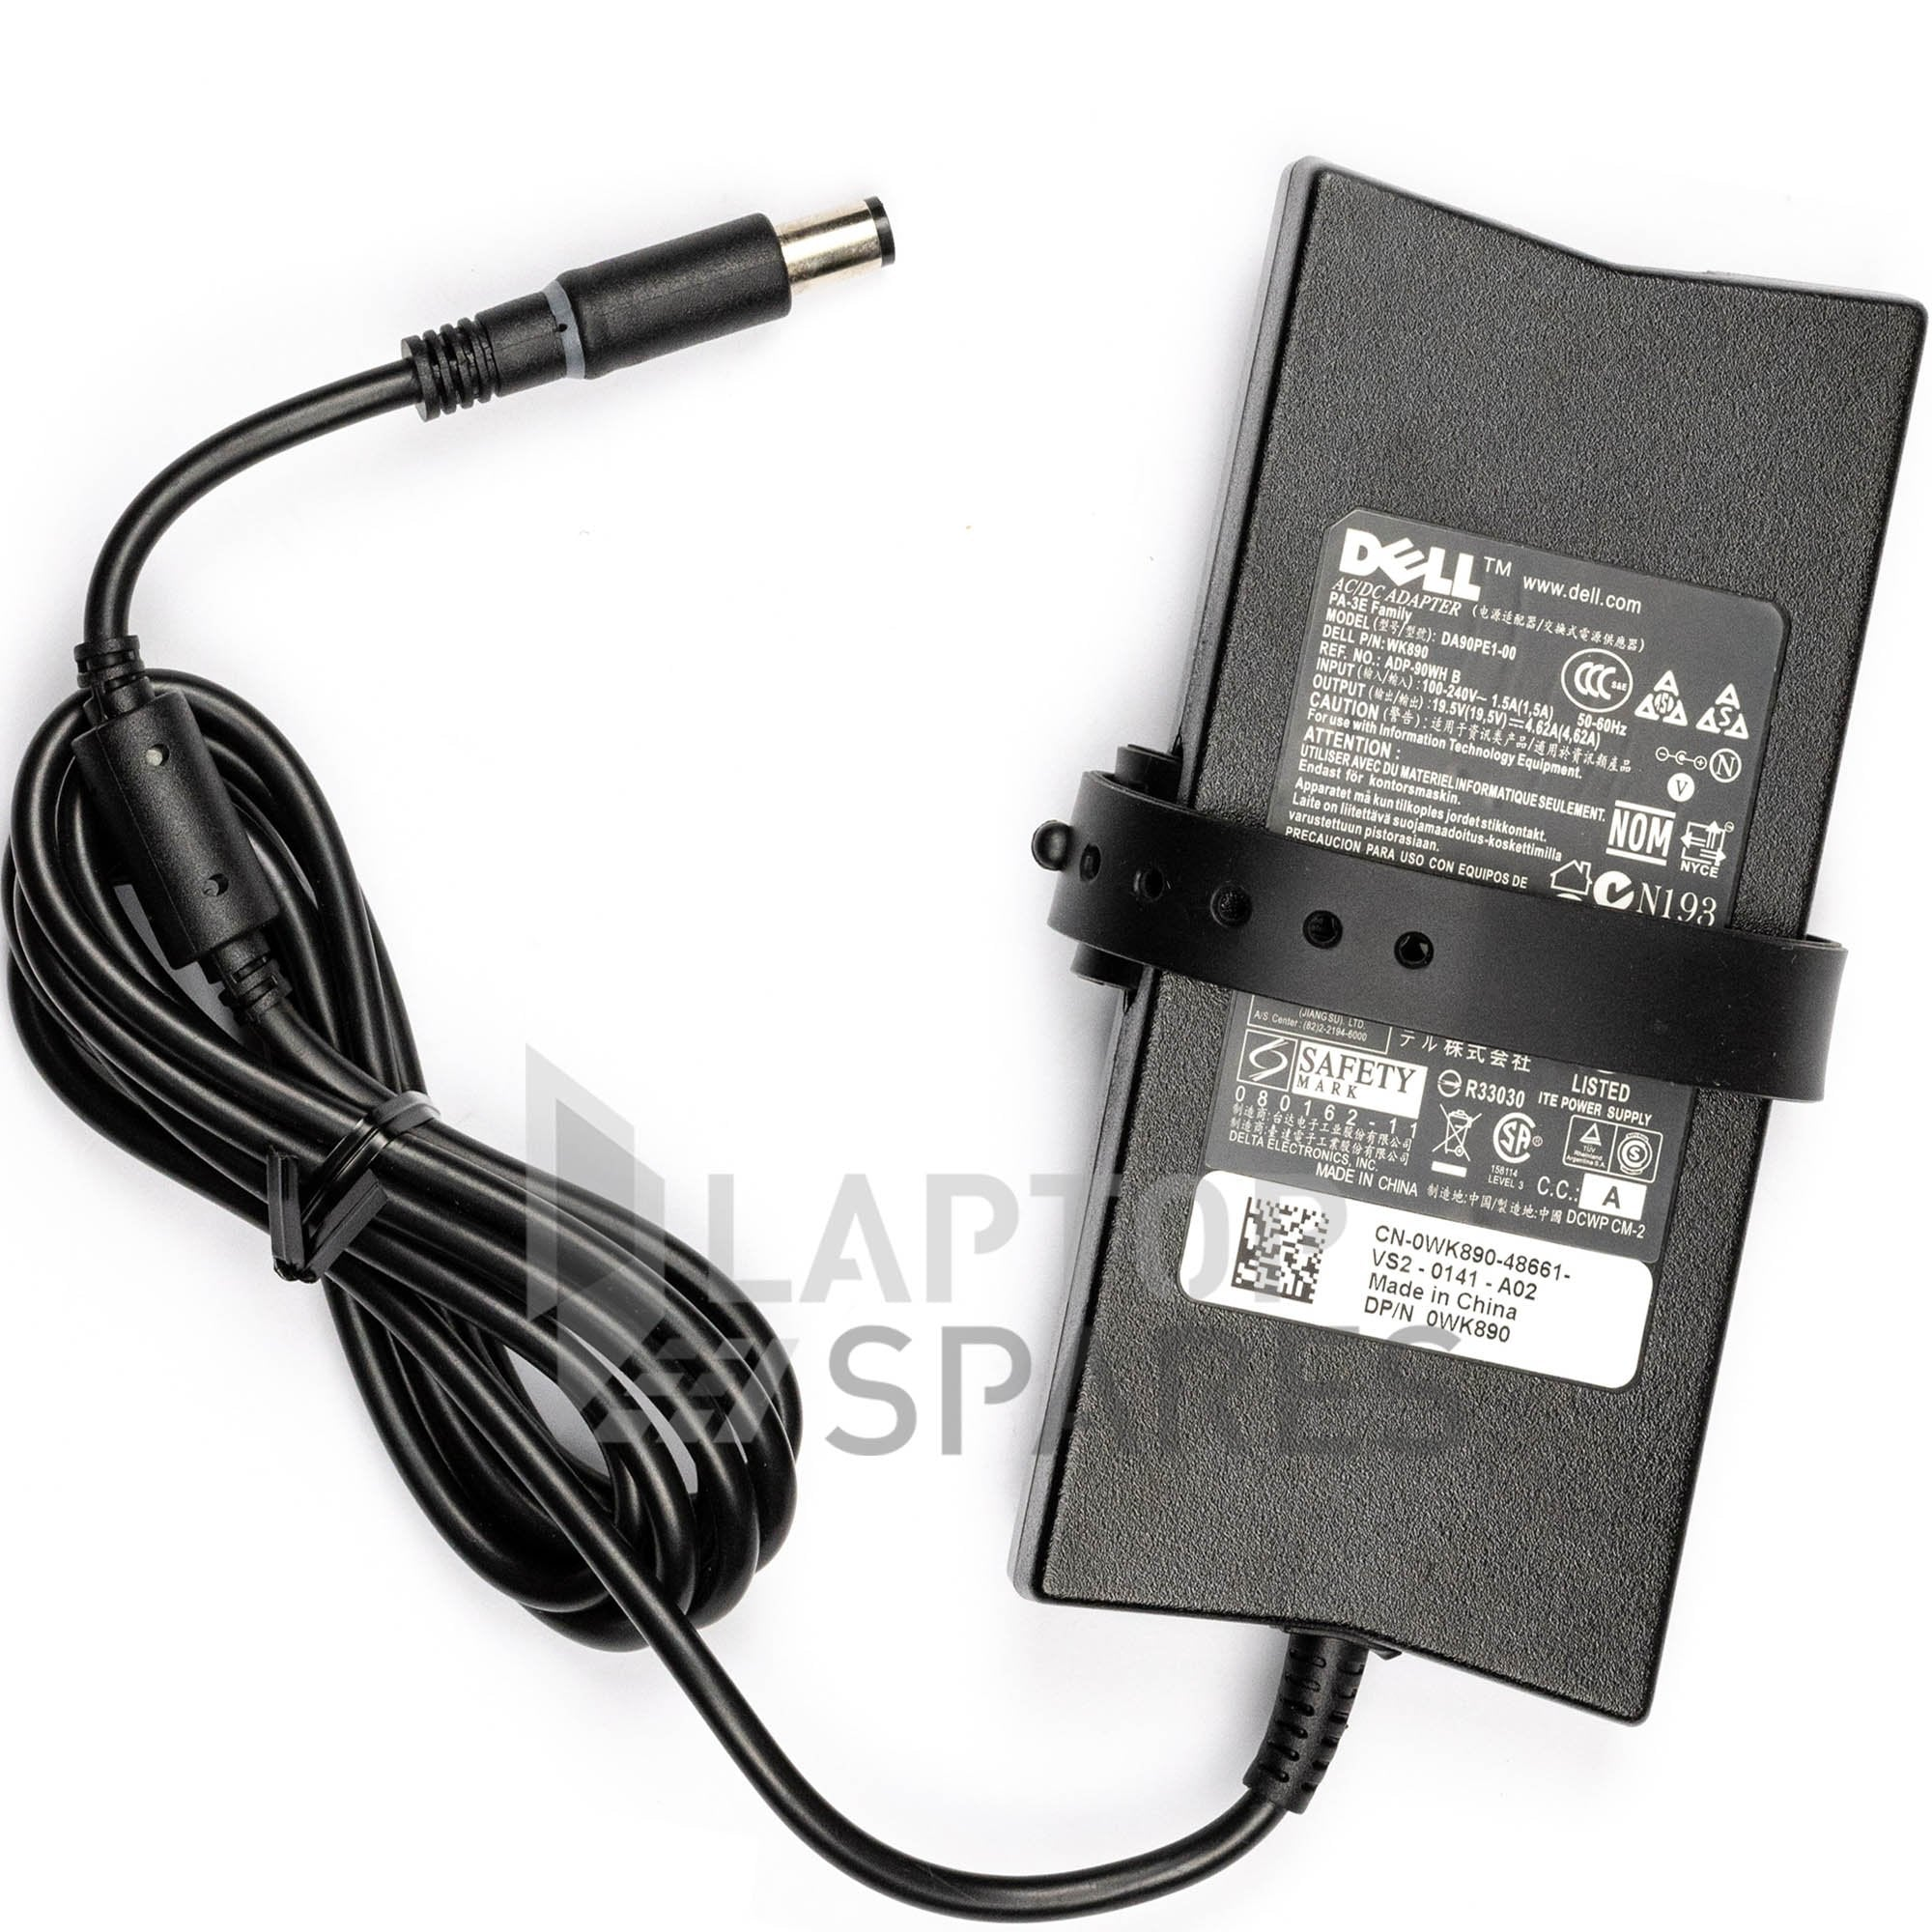 Dell Inspiron 500m 505M 510m Laptop Slim AC Adapter Charger